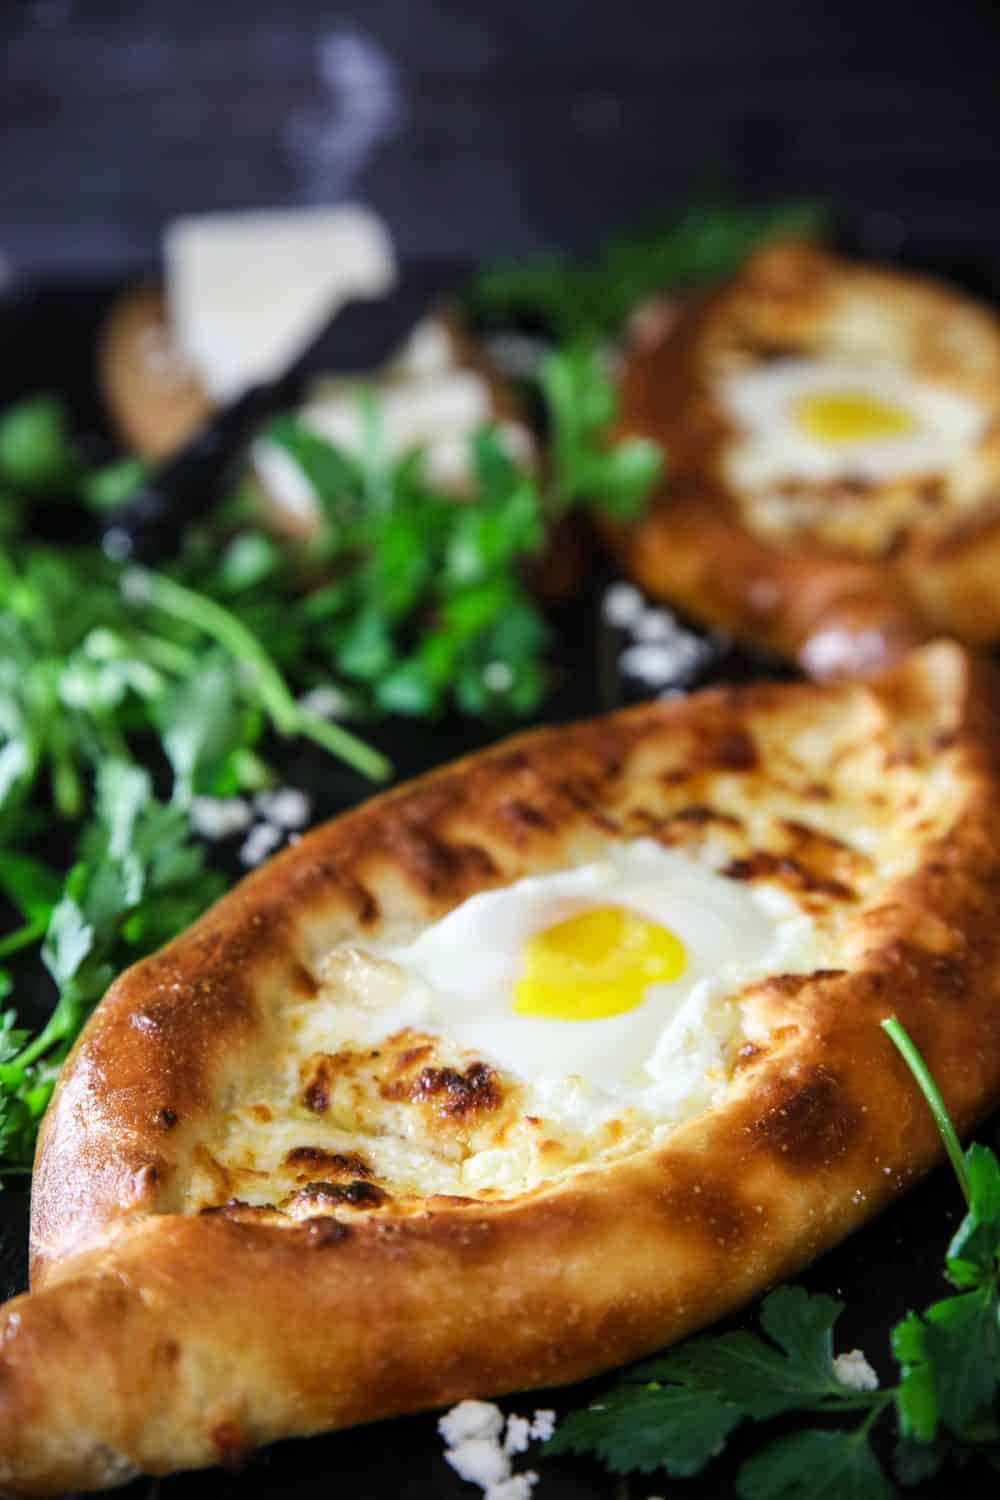 easy khachapuri made with pizza dough and an egg in the middle